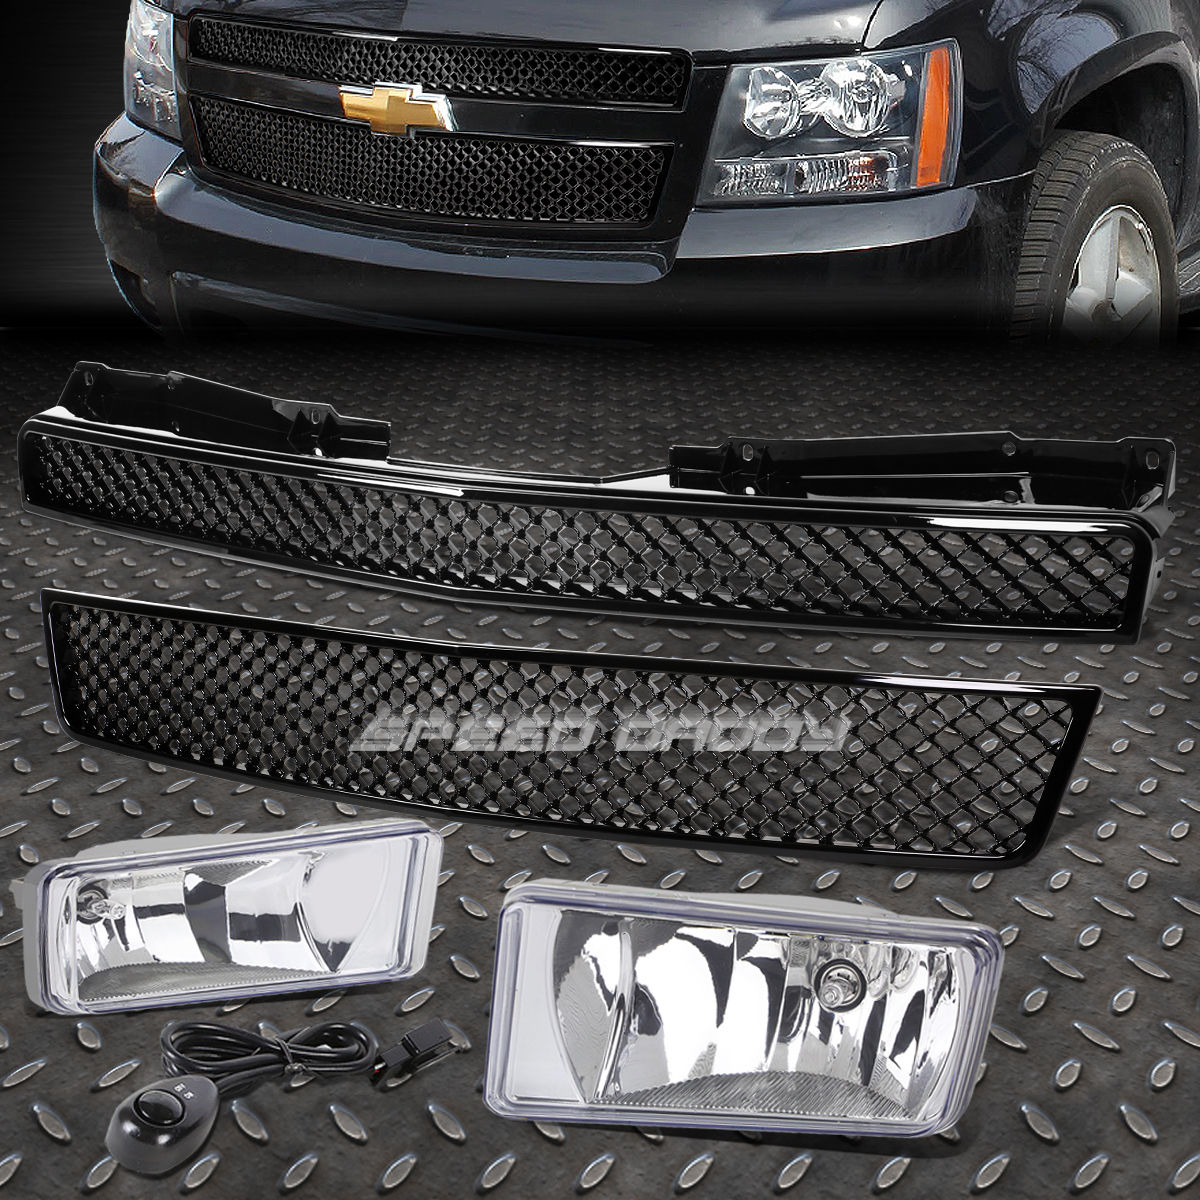 グリル フロントバンパーメッシュグリルガード+クリアホッグライト07-12 CHEVY TAHOE / SUBURBAN FRONT BUMPER MESHED GRILLE GUARD+CLEAR FOG LIGHT FOR 07-12 CHEVY TAHOE/SUBURBAN